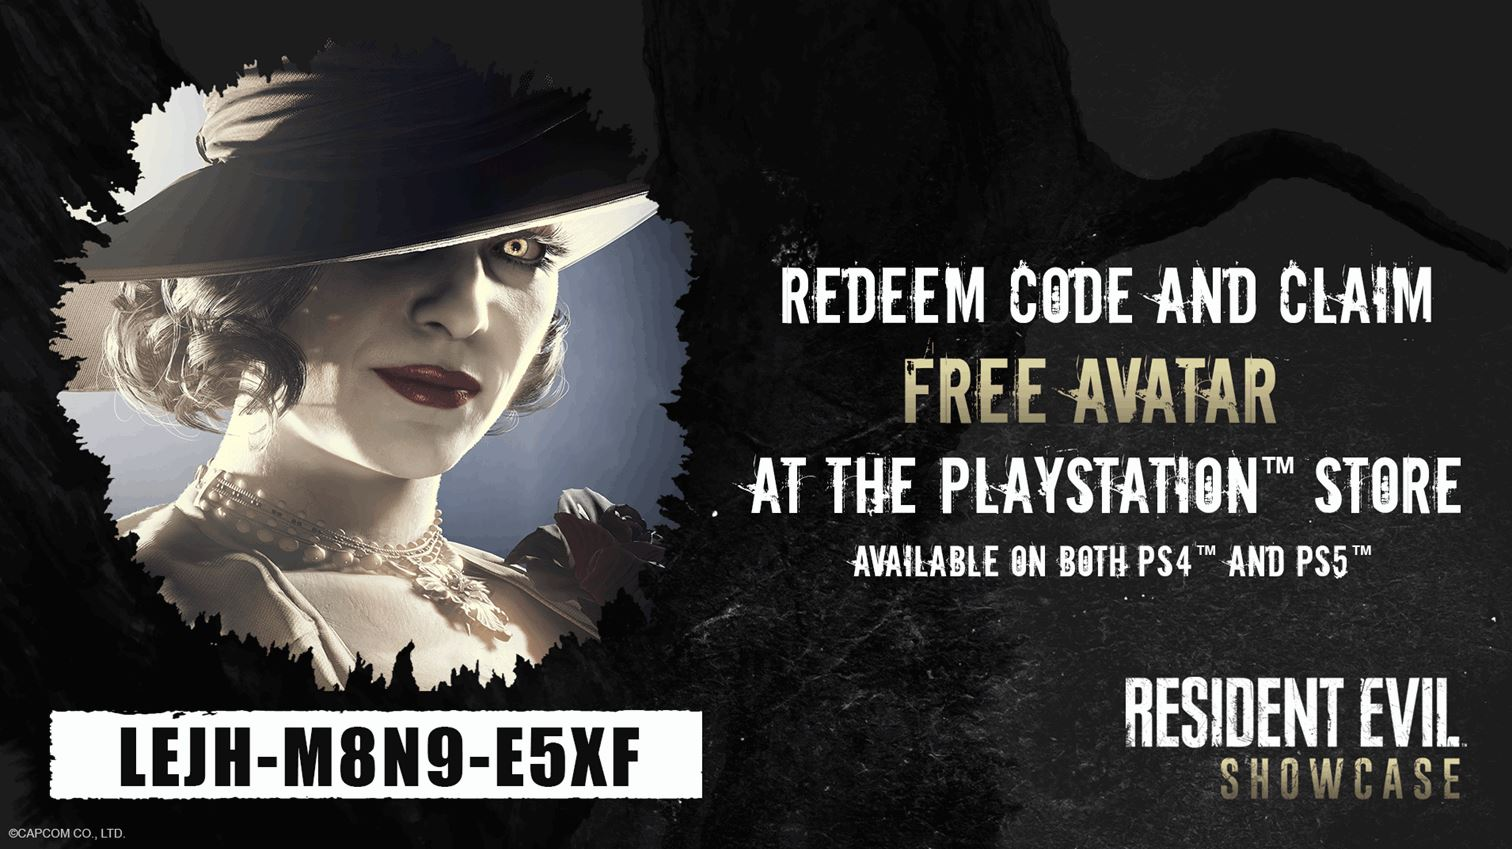 resident-evil-village-vampire-lady-psn-avatars-available-with-this-playstation-store-code